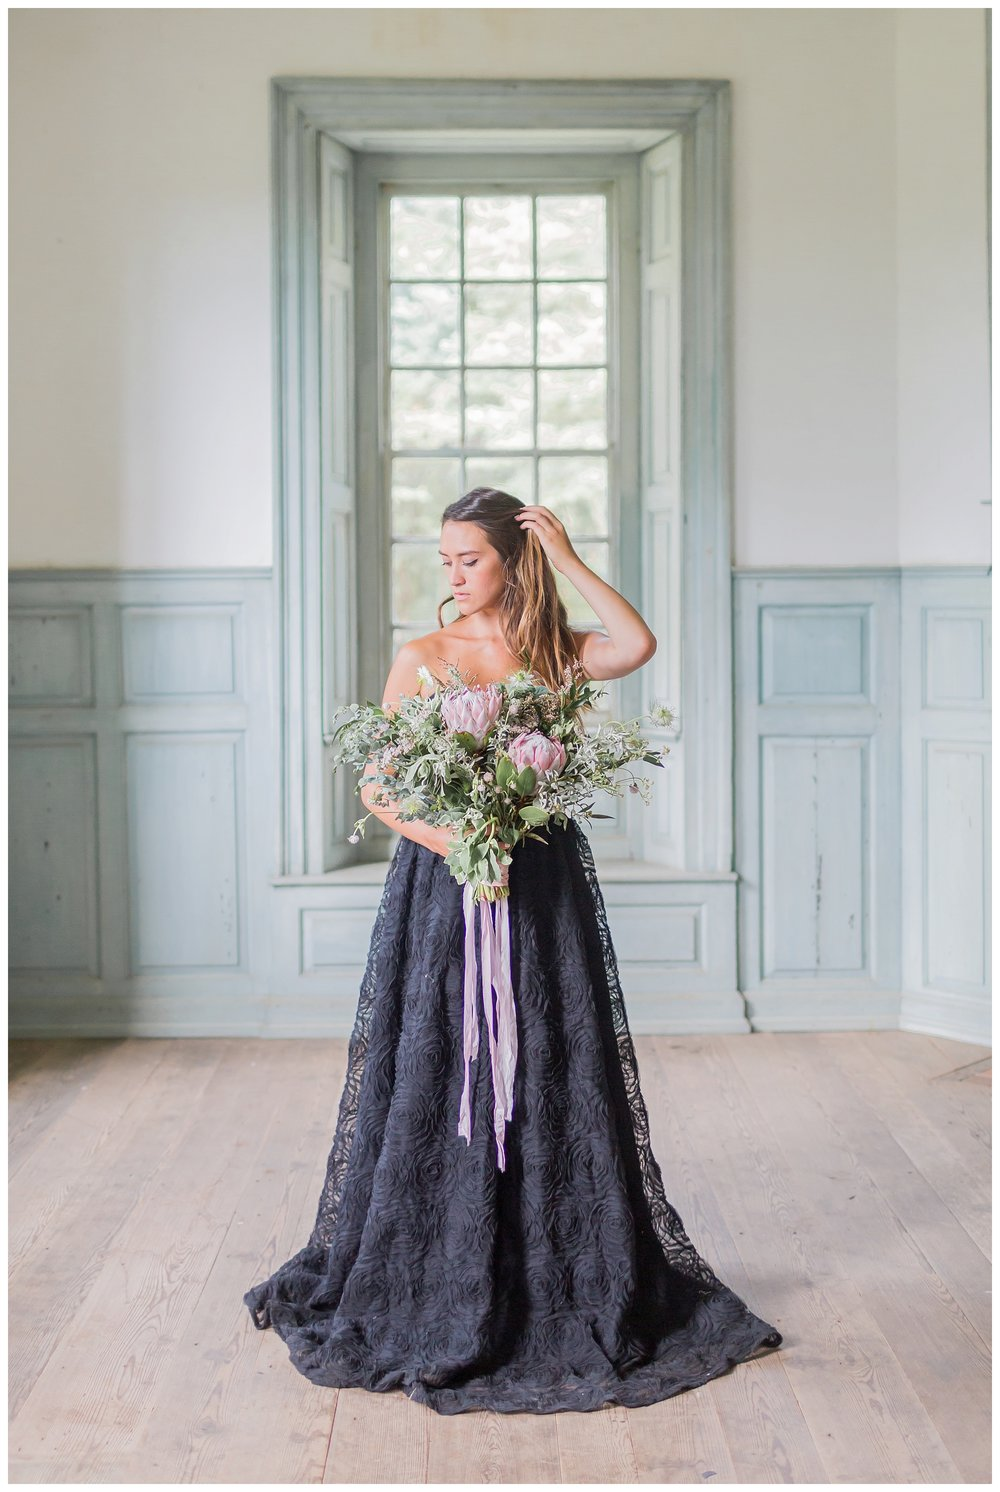 Germana Wedding Inspiration | Black Wedding Dress | Alternative ...